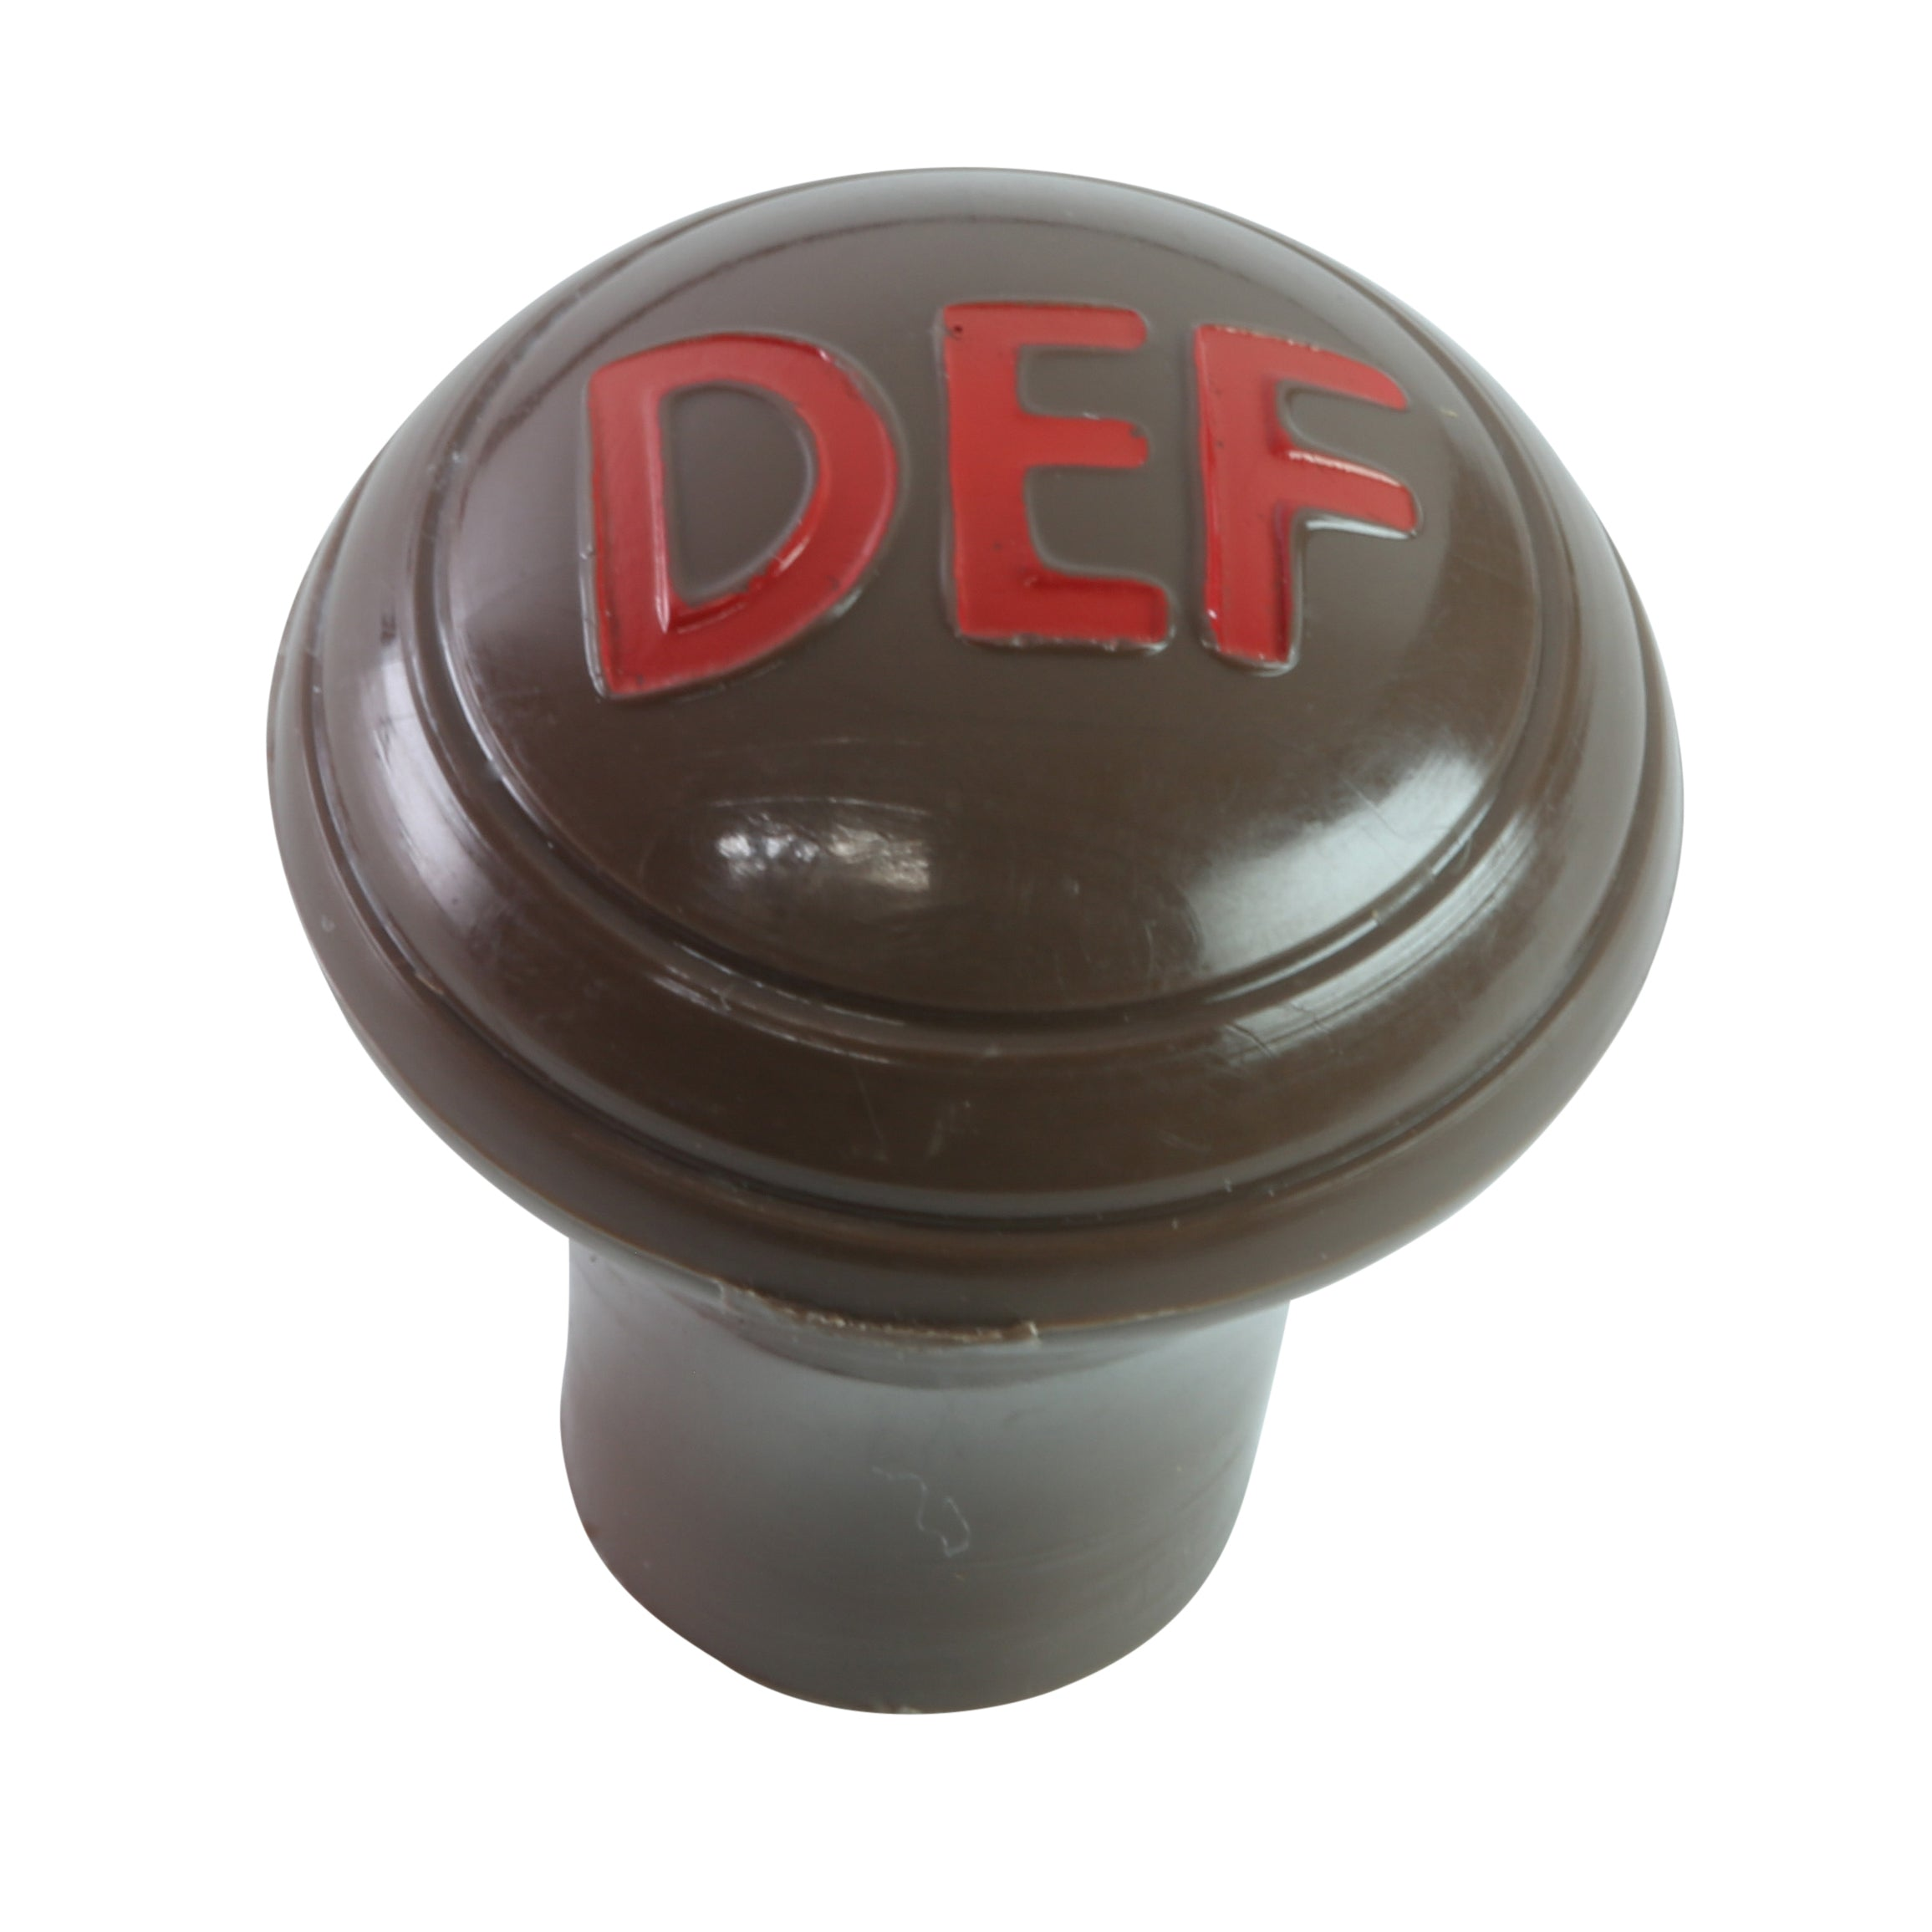 Hot Water Heater Defroster Knob (Chocolate) • 1946